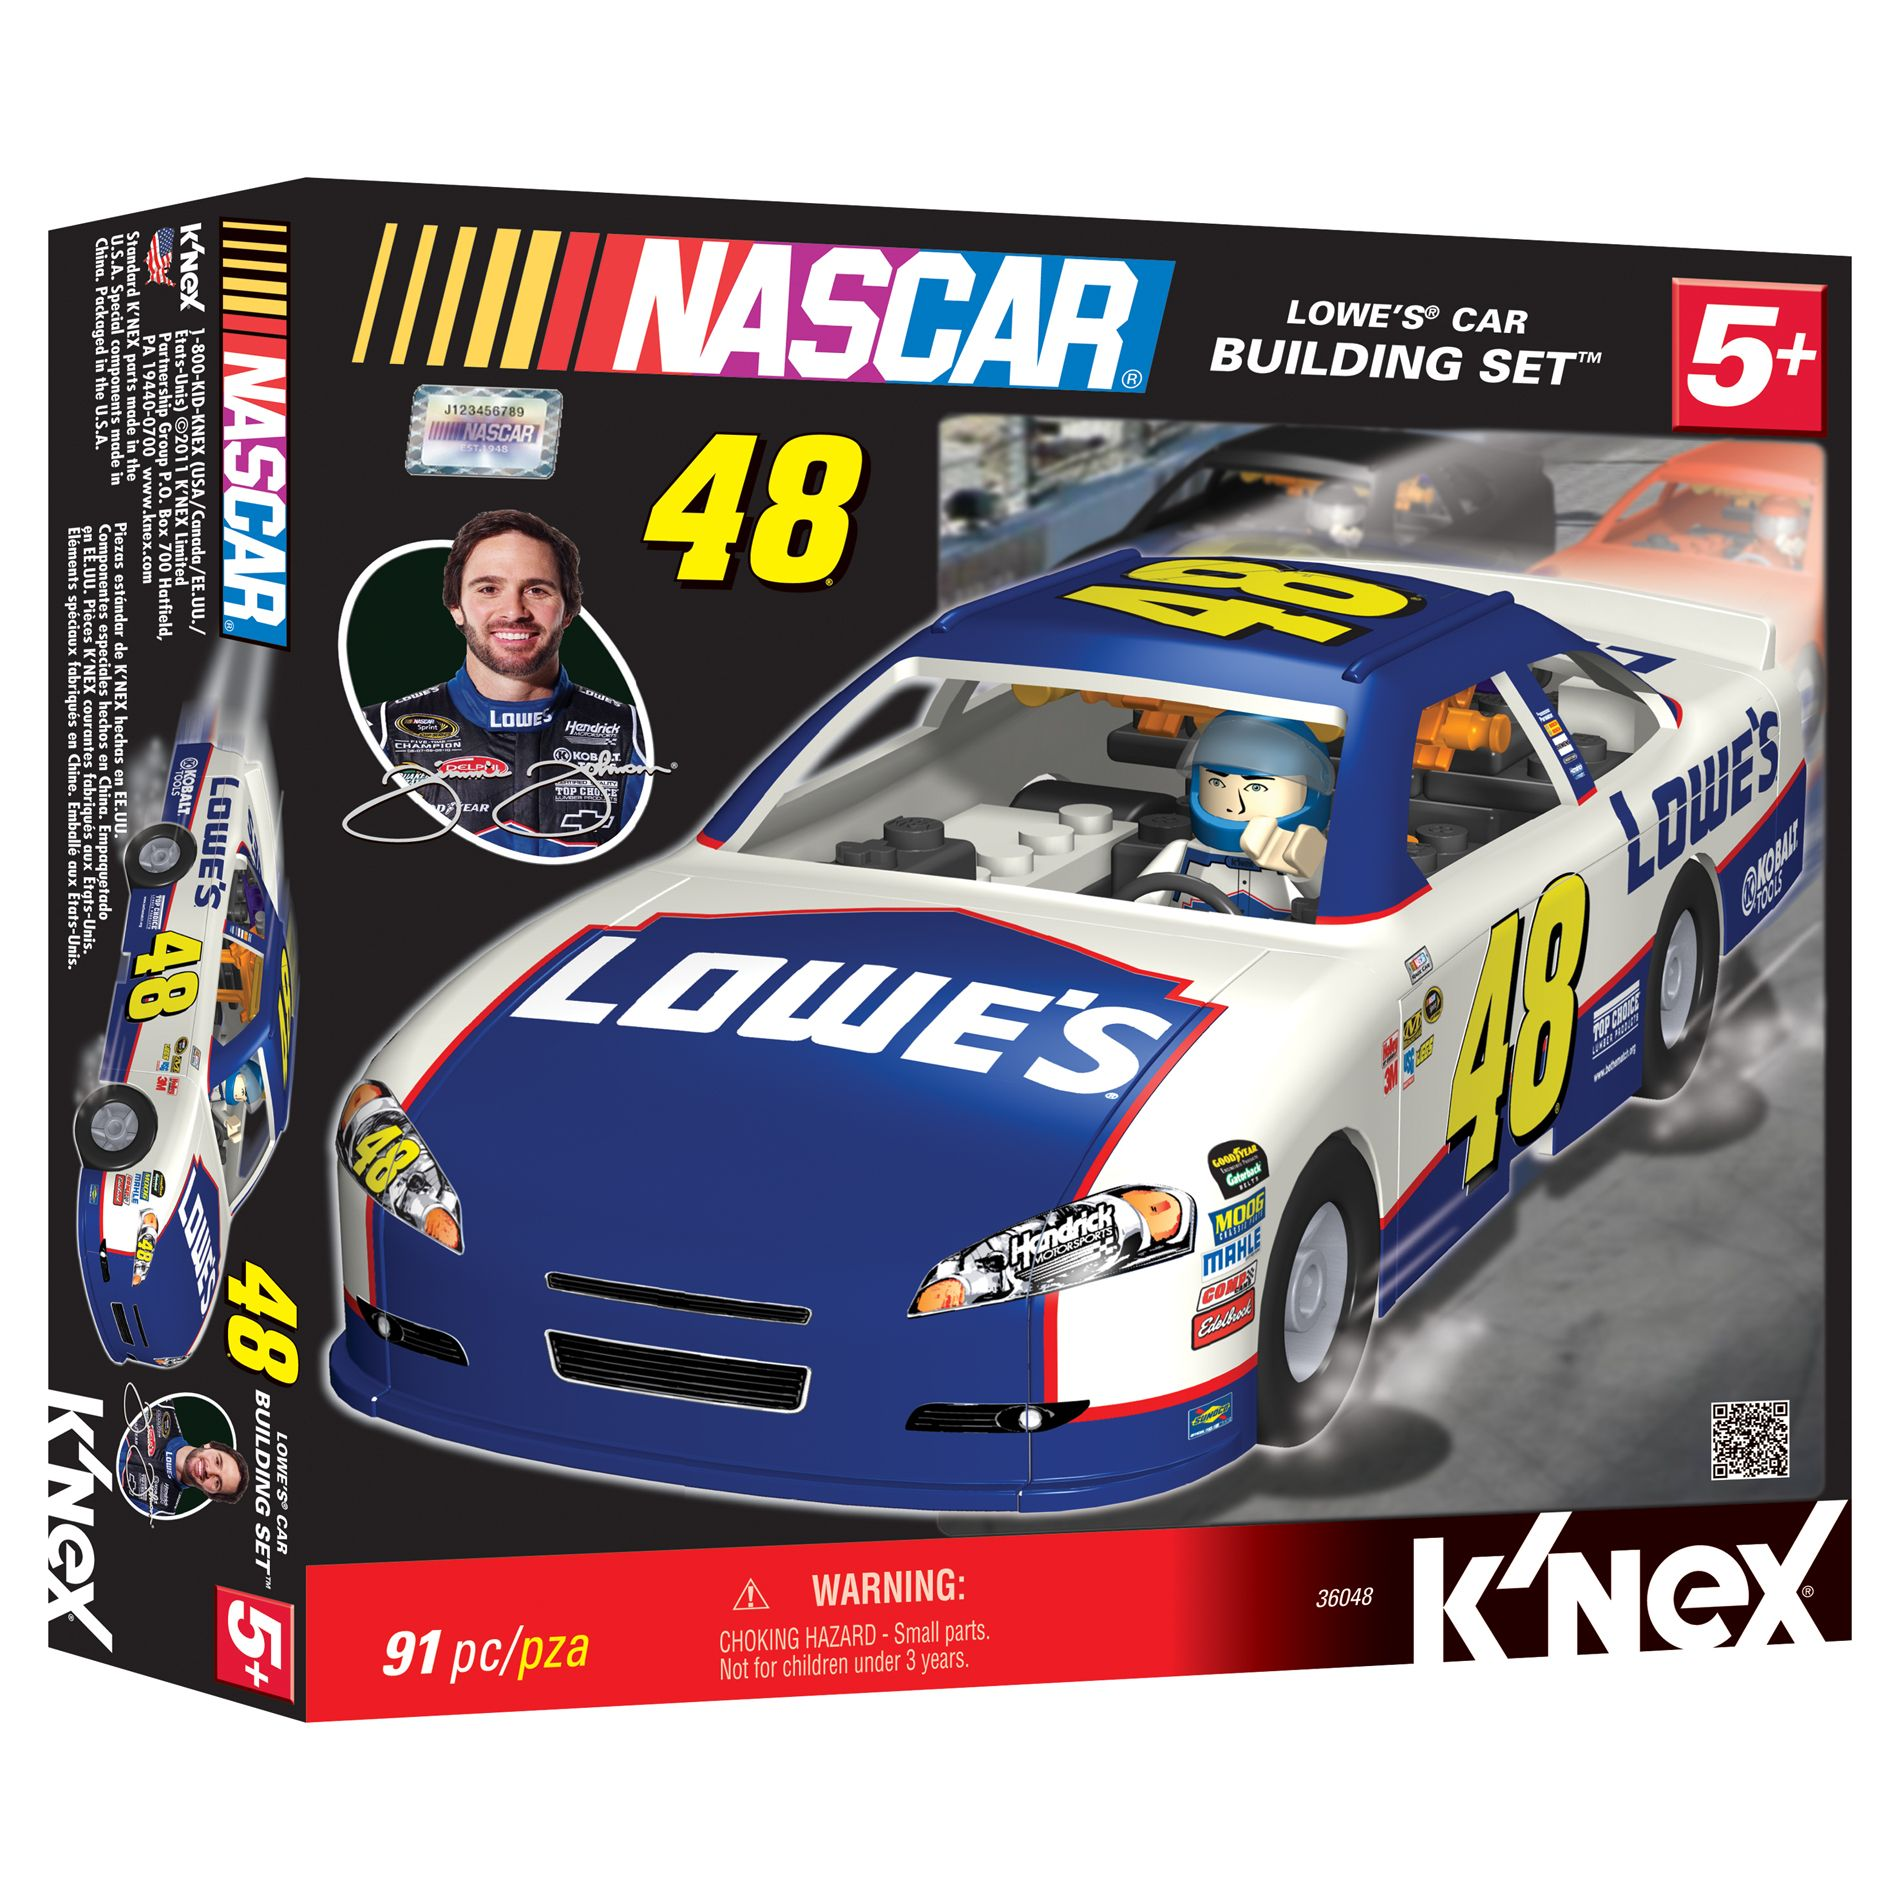 K'Nex  NASCAR Jimmie Johnson #48 LOWES CAR